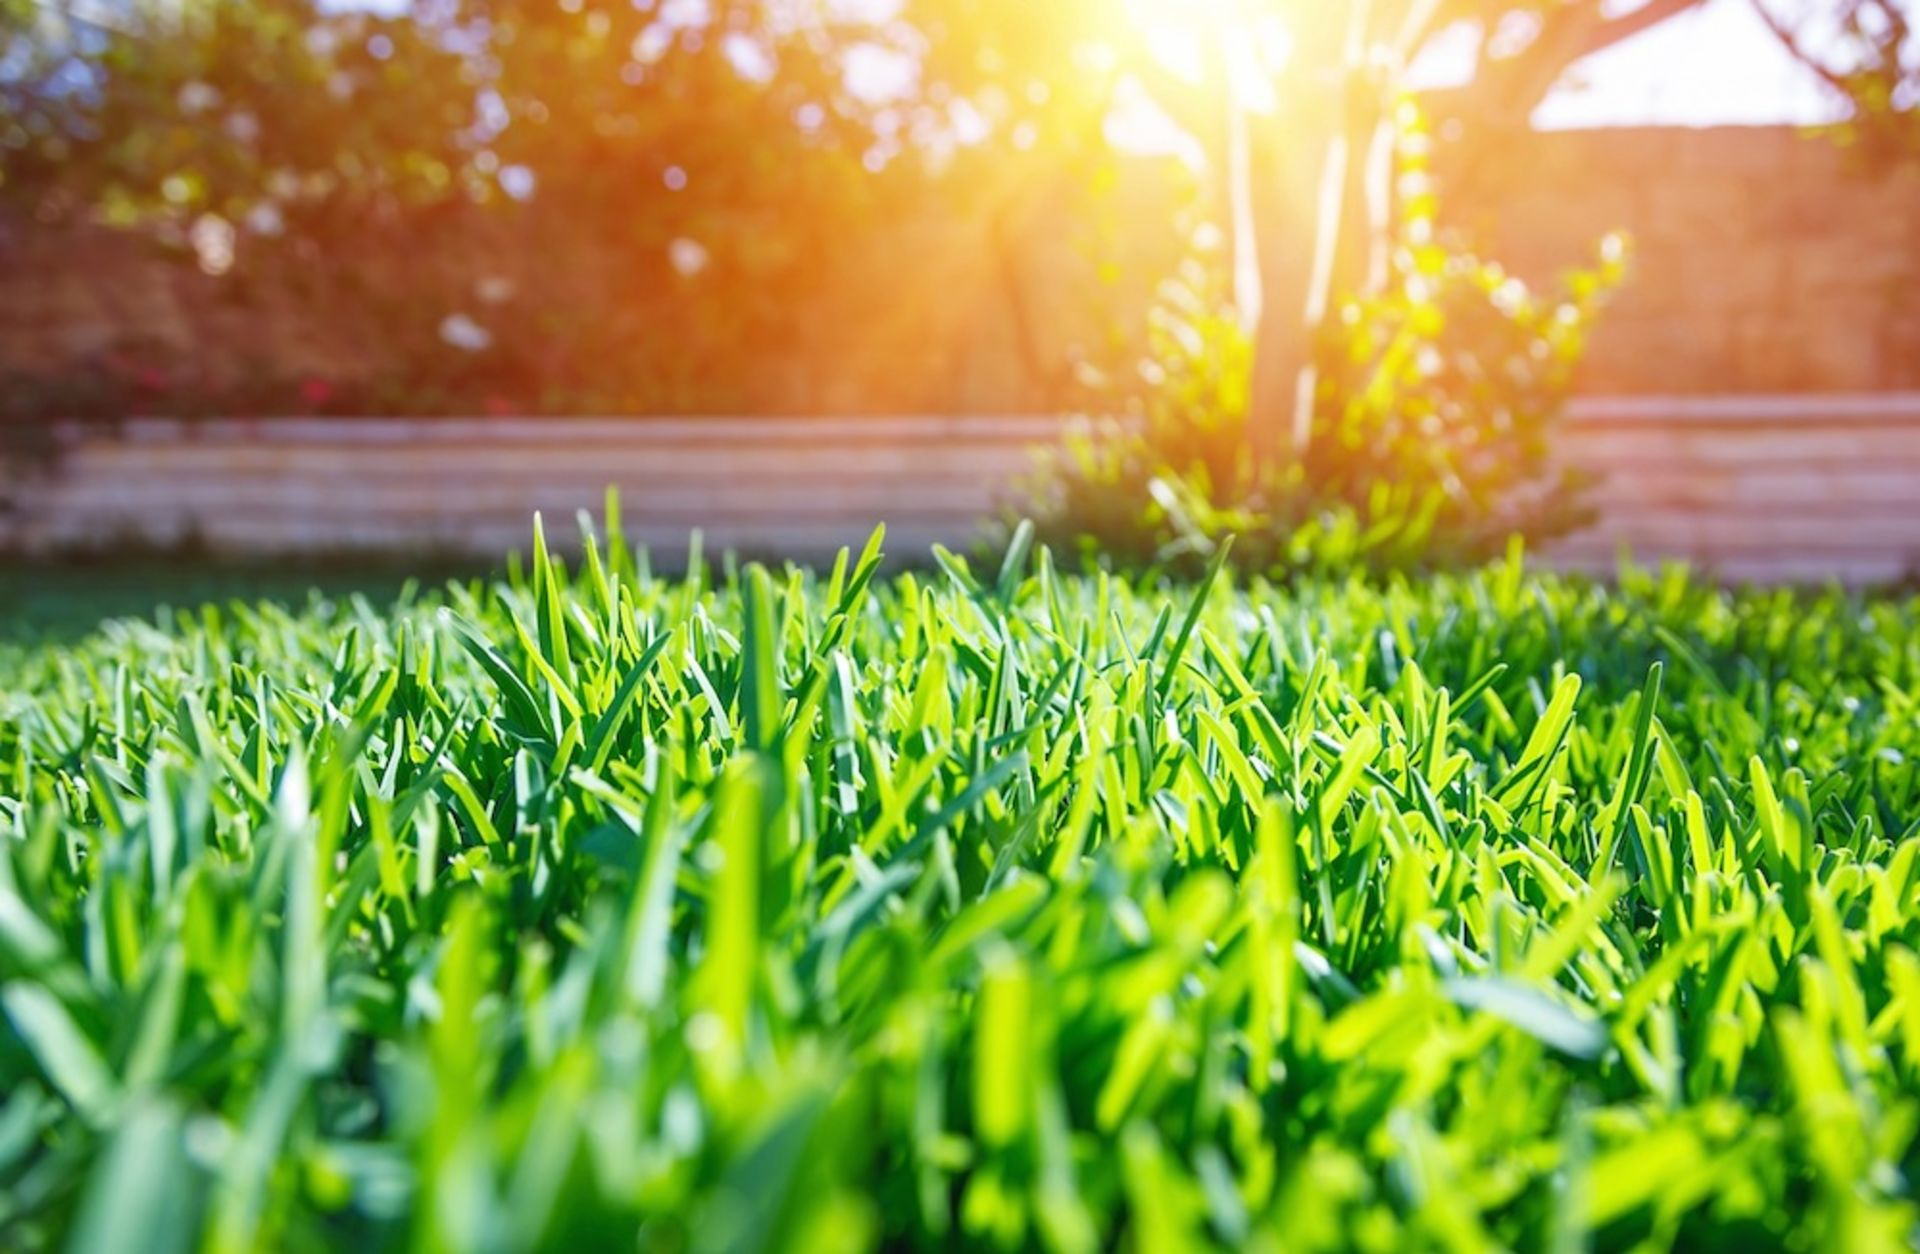 Preparing Your Lawn for Spring: 5 Simple Steps